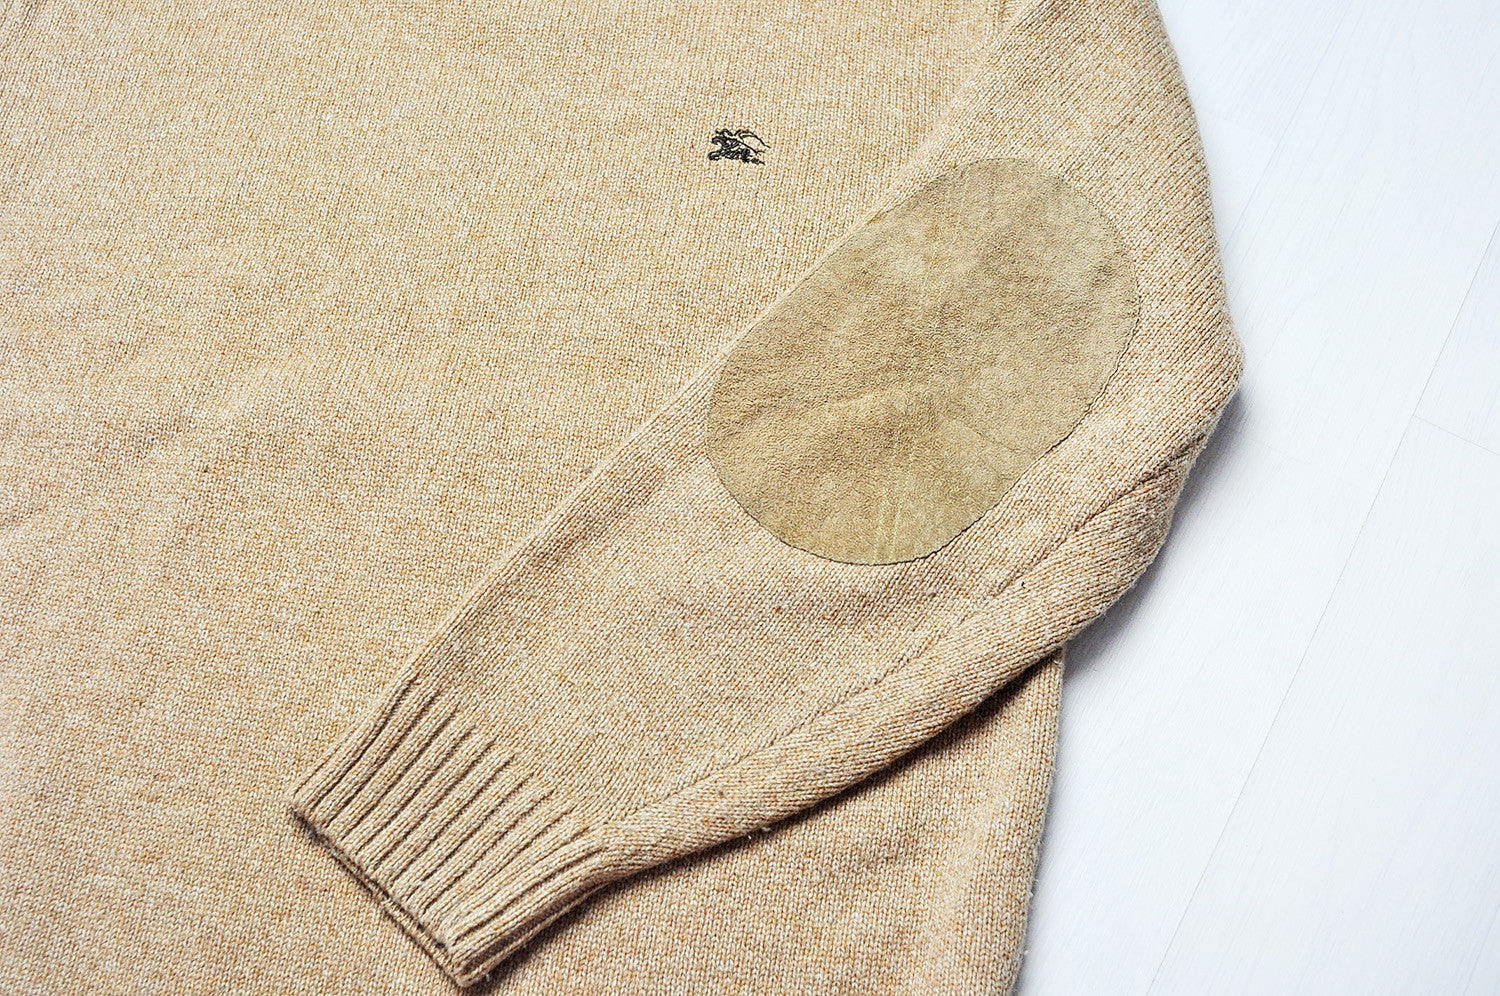 Vintage Burberry Elbow Patched Tanned Knit Jumper Sweater